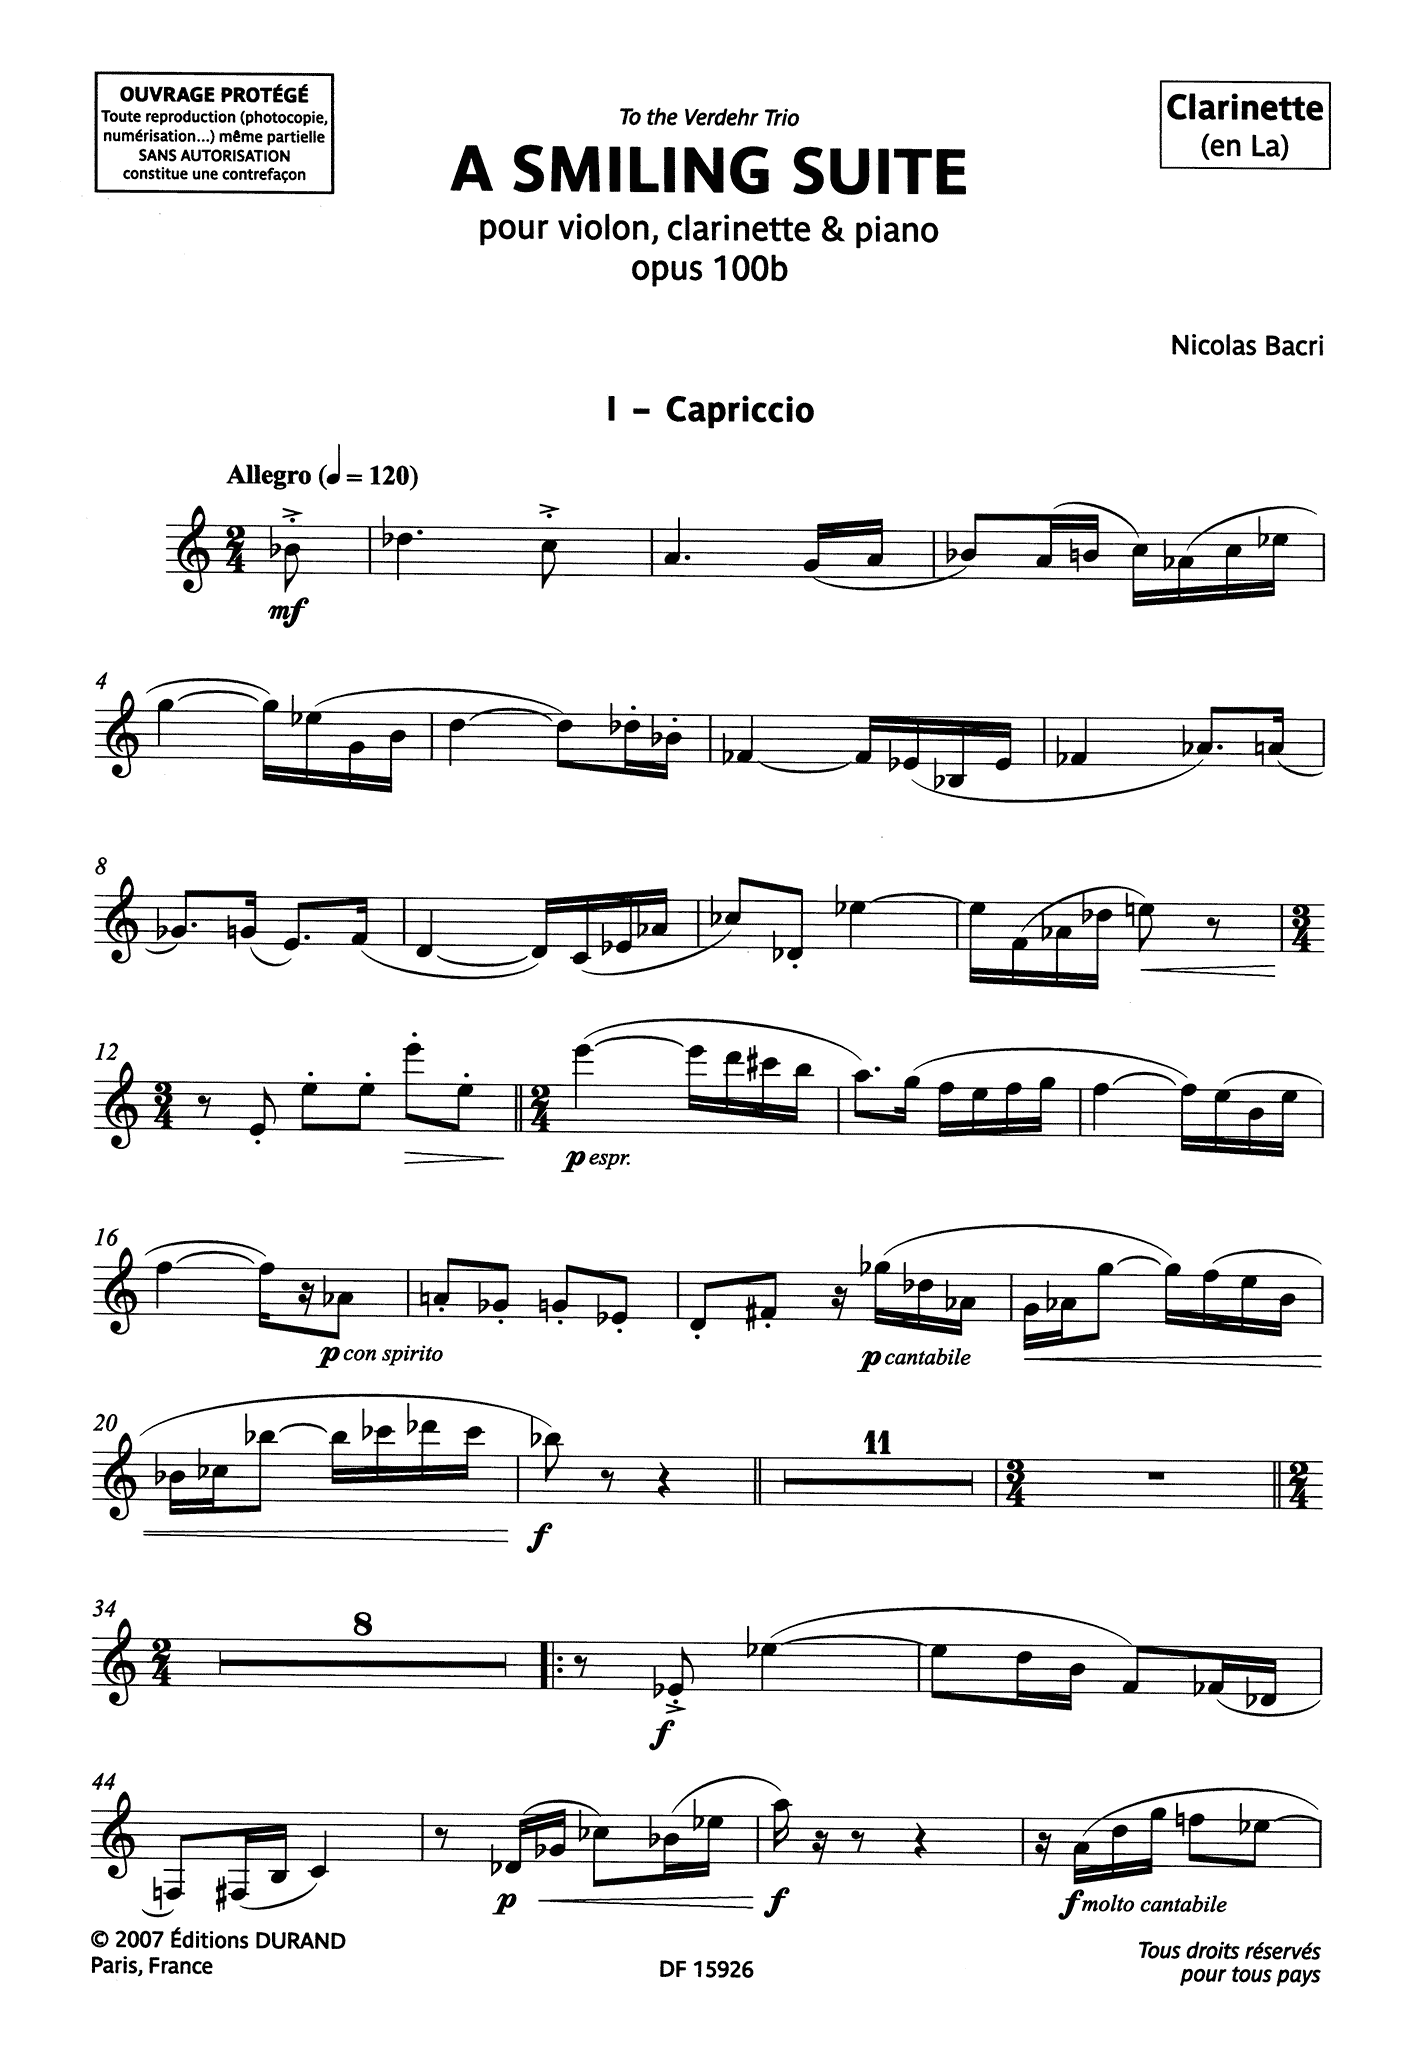 Bacri A Smiling Suite, Op. 100b clarinet part